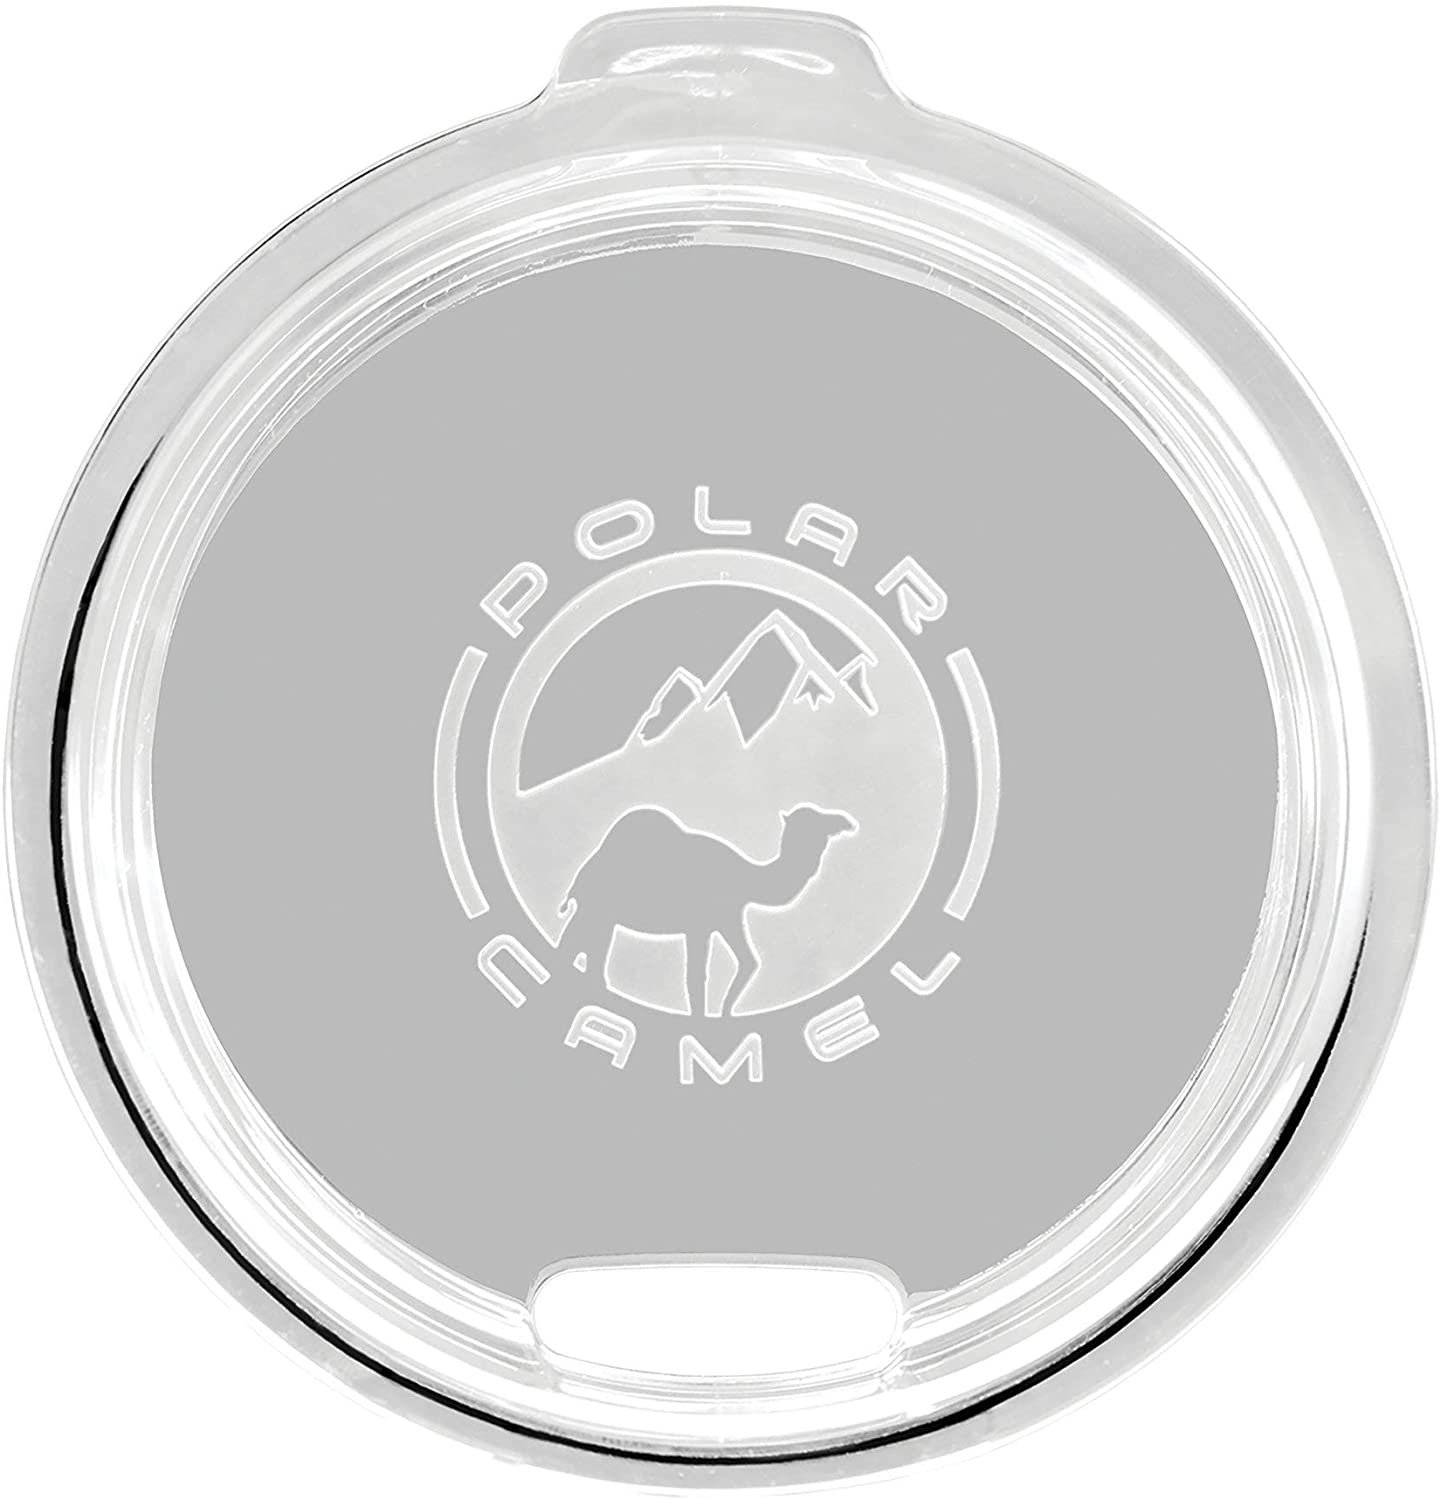 Amazon.com: Polar Camel - Vaso aislante de acero inoxidable ...